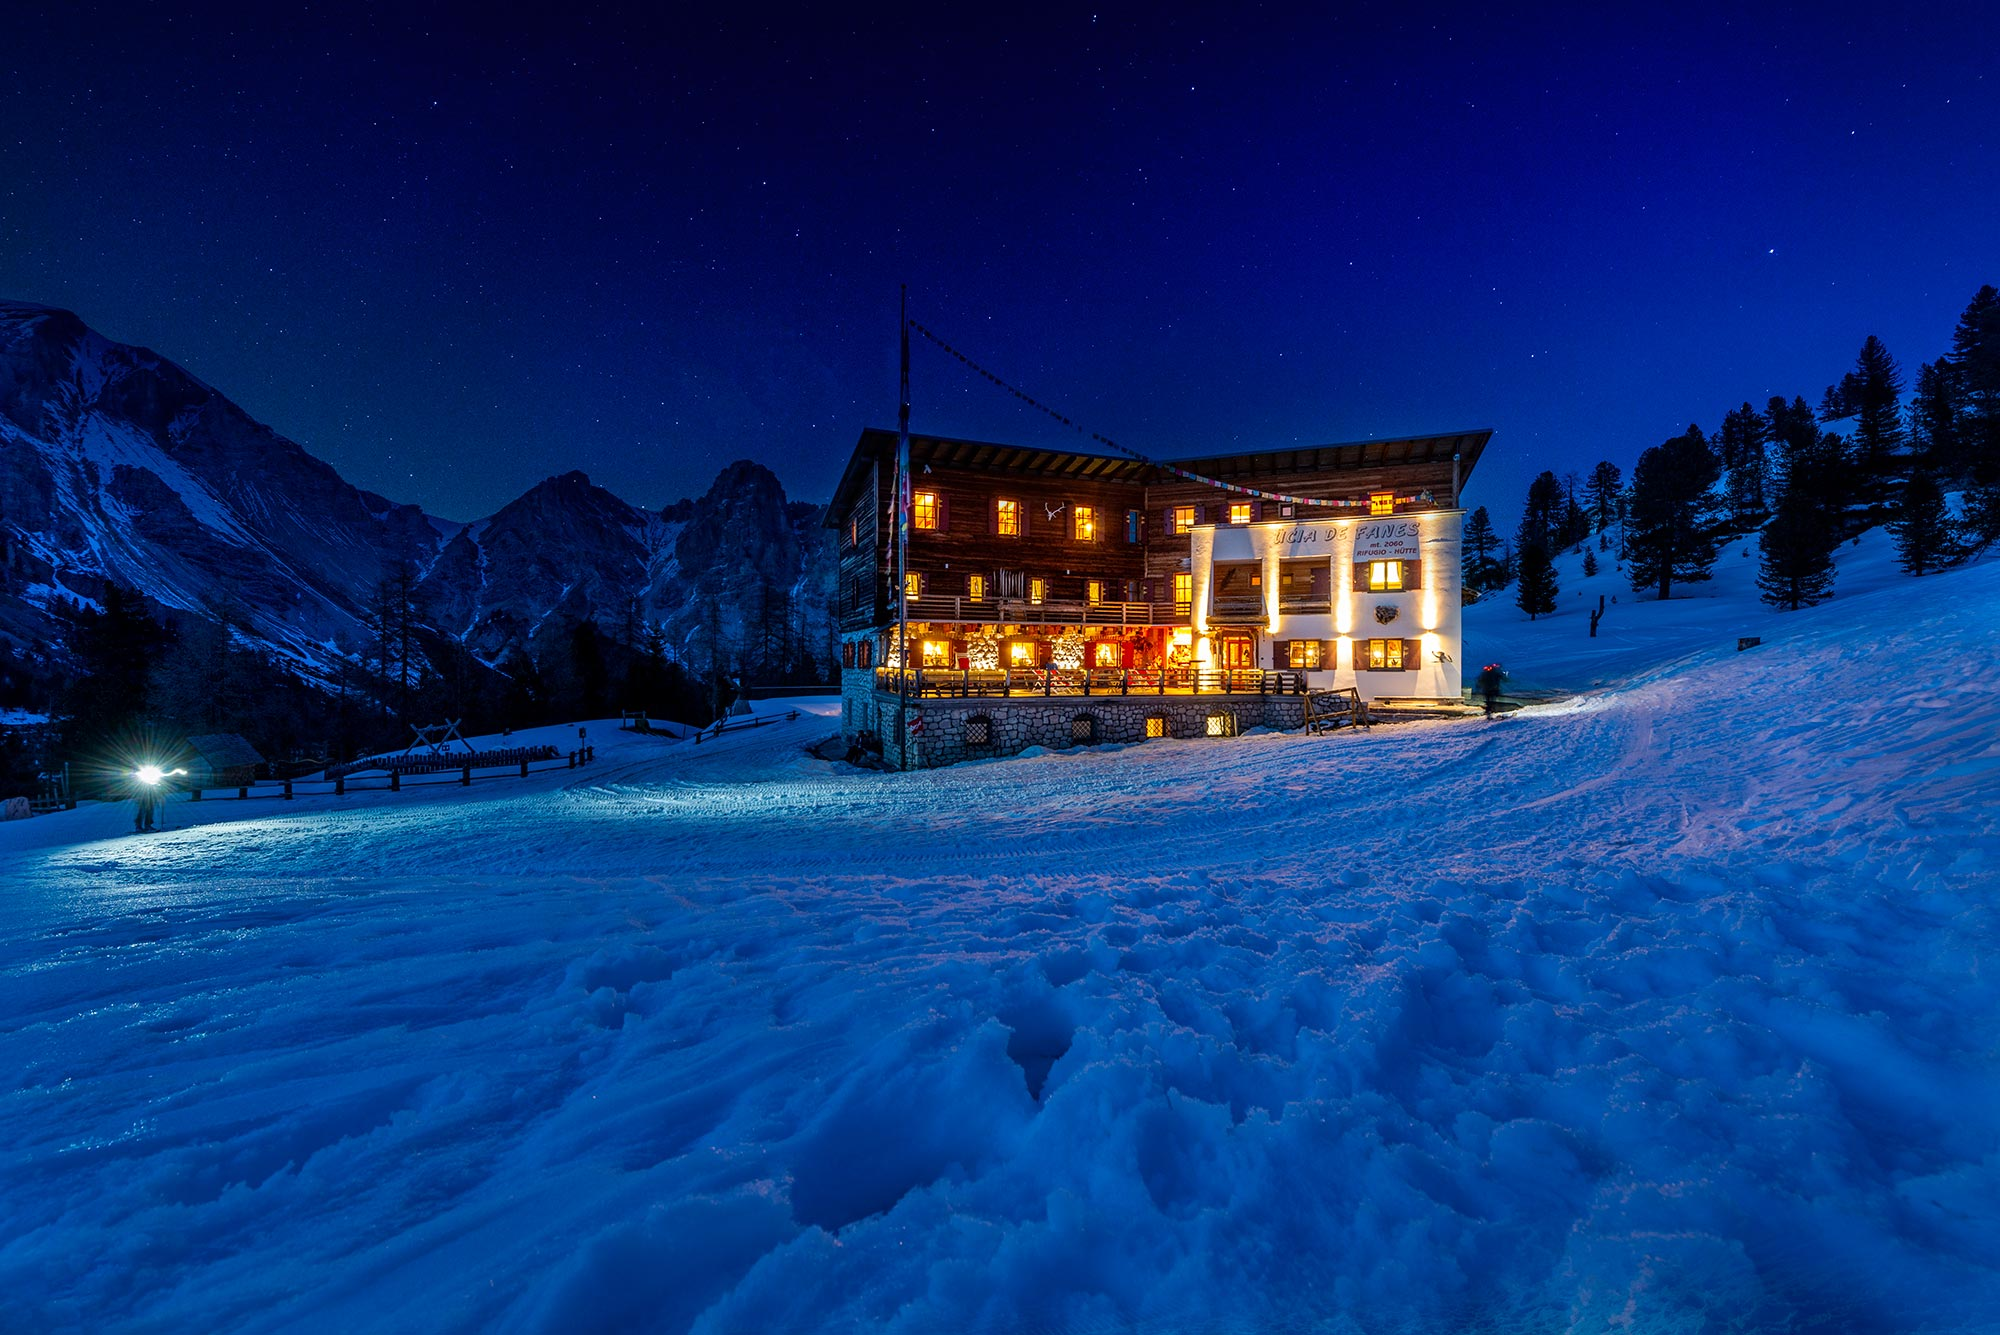 The facade of the Fanes Hut at night during the winter